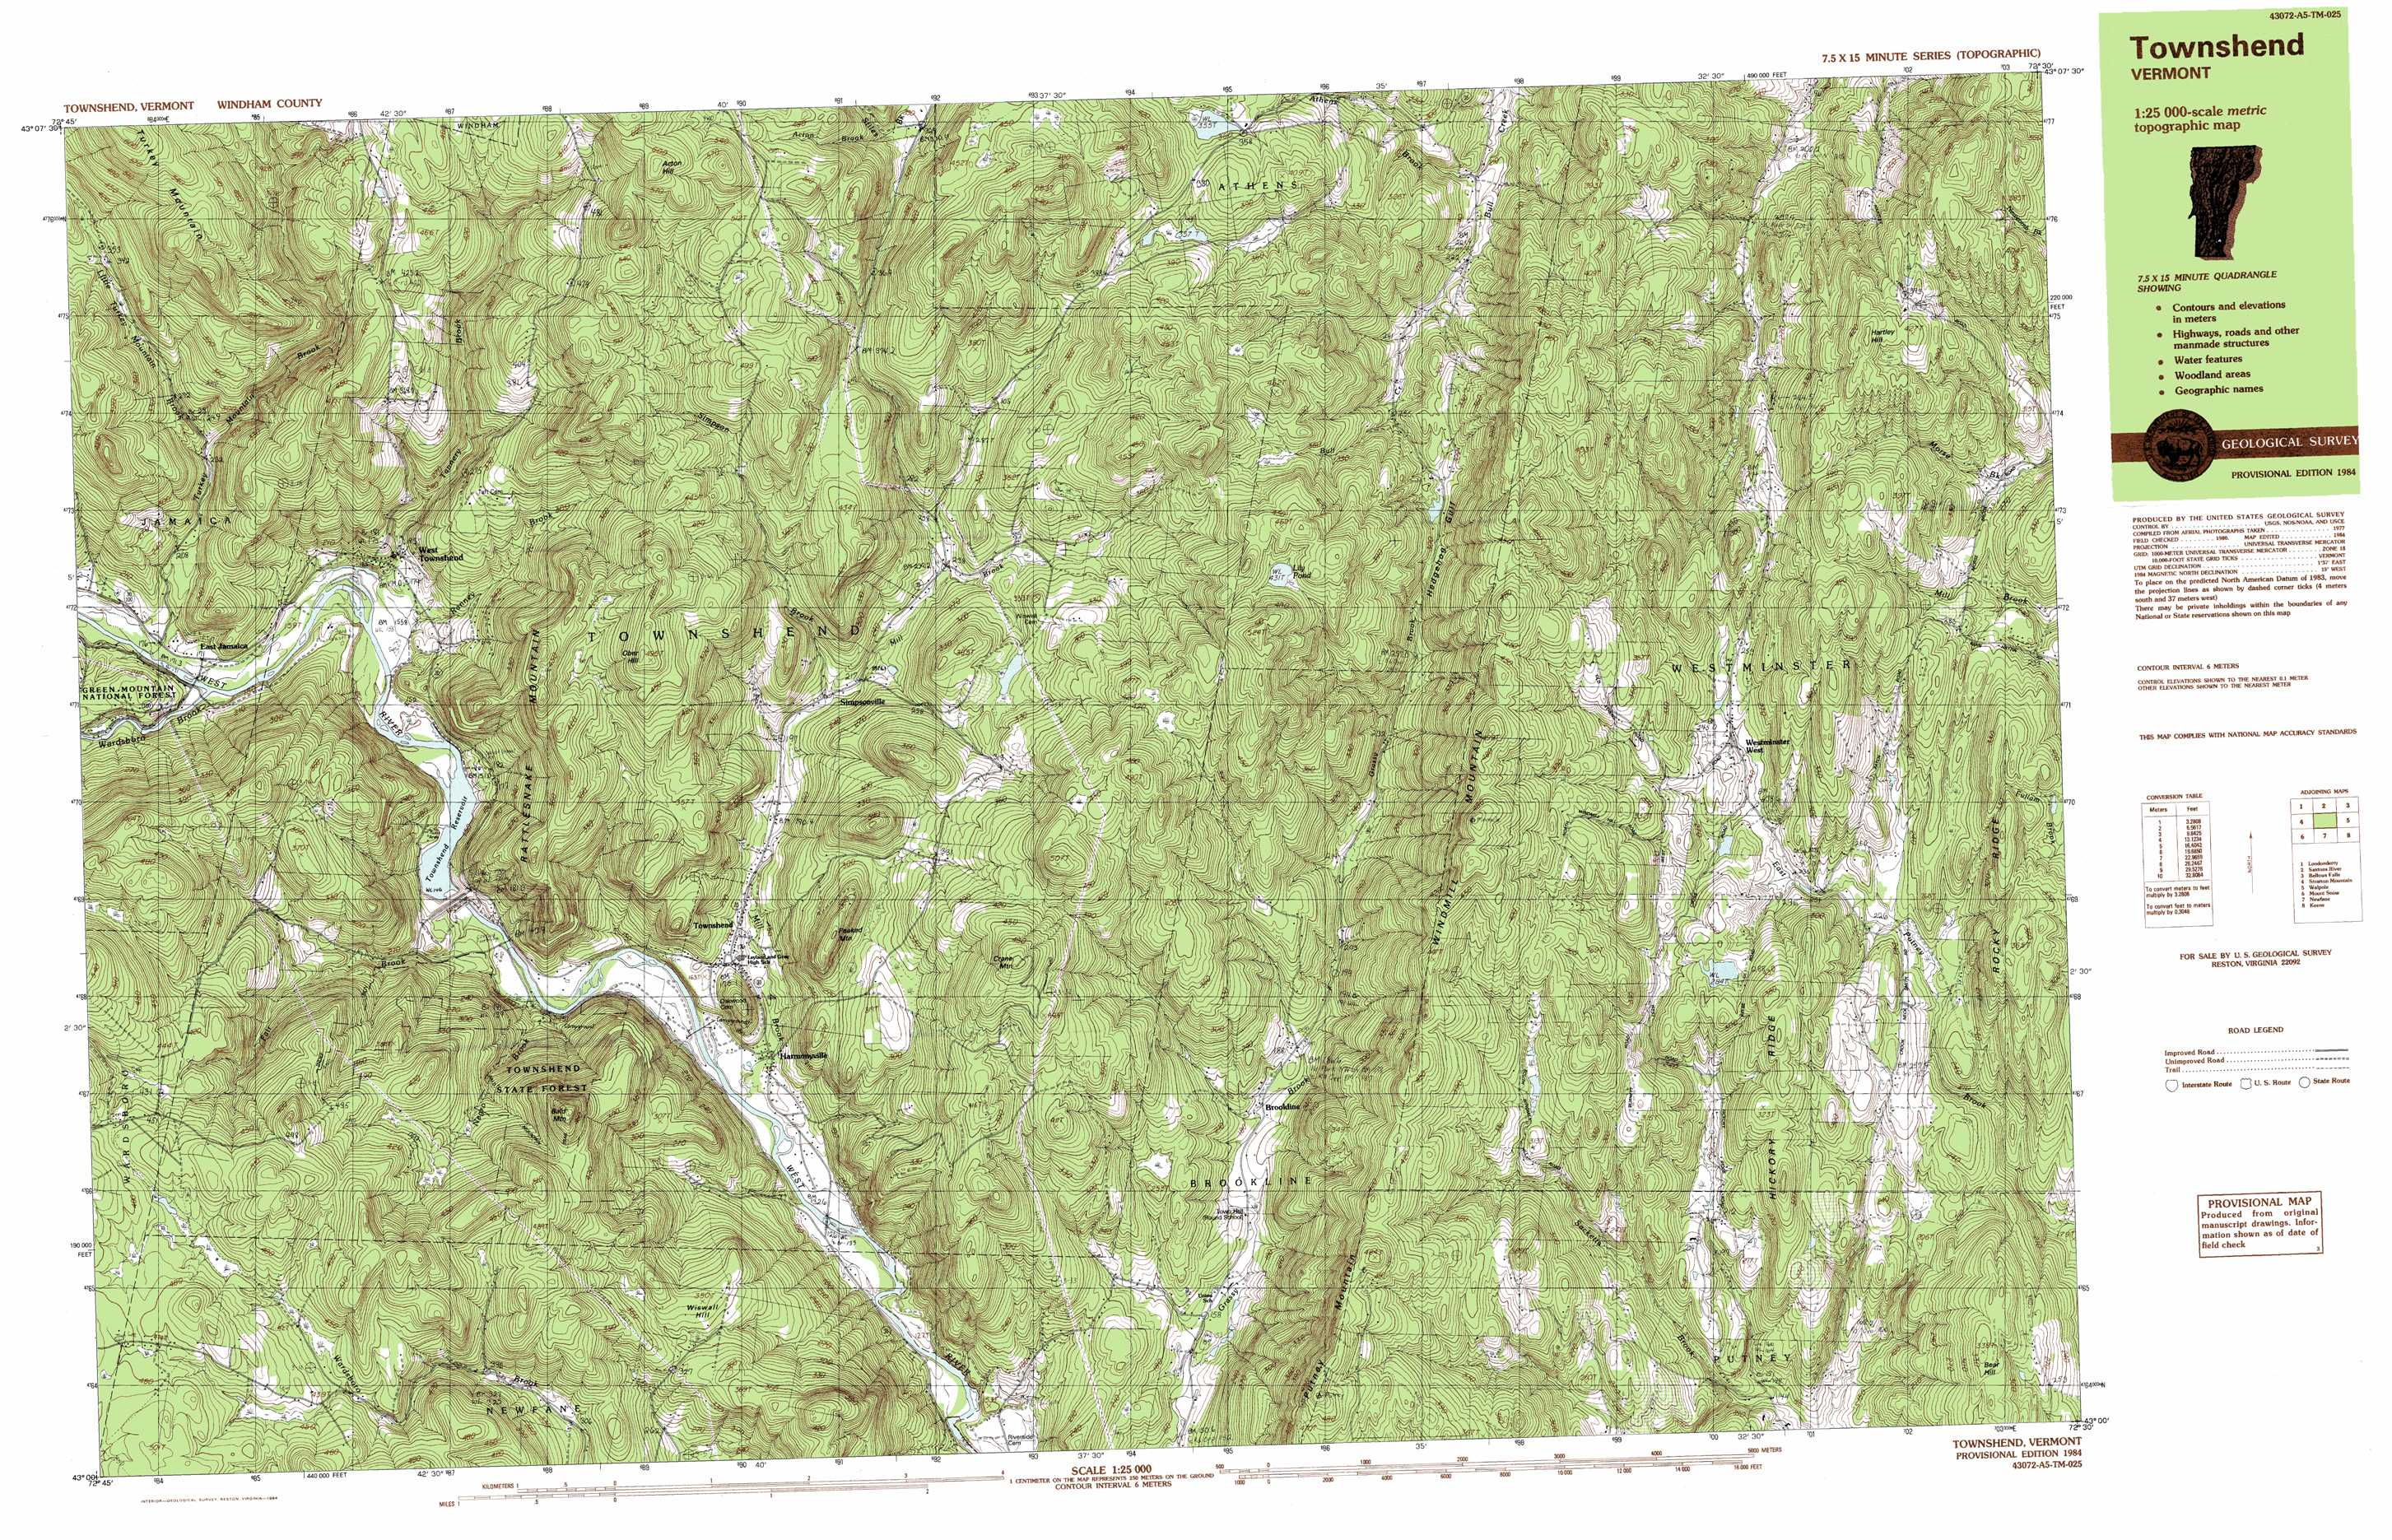 Westminster West topographic map VT USGS Topo Quad 43072a5